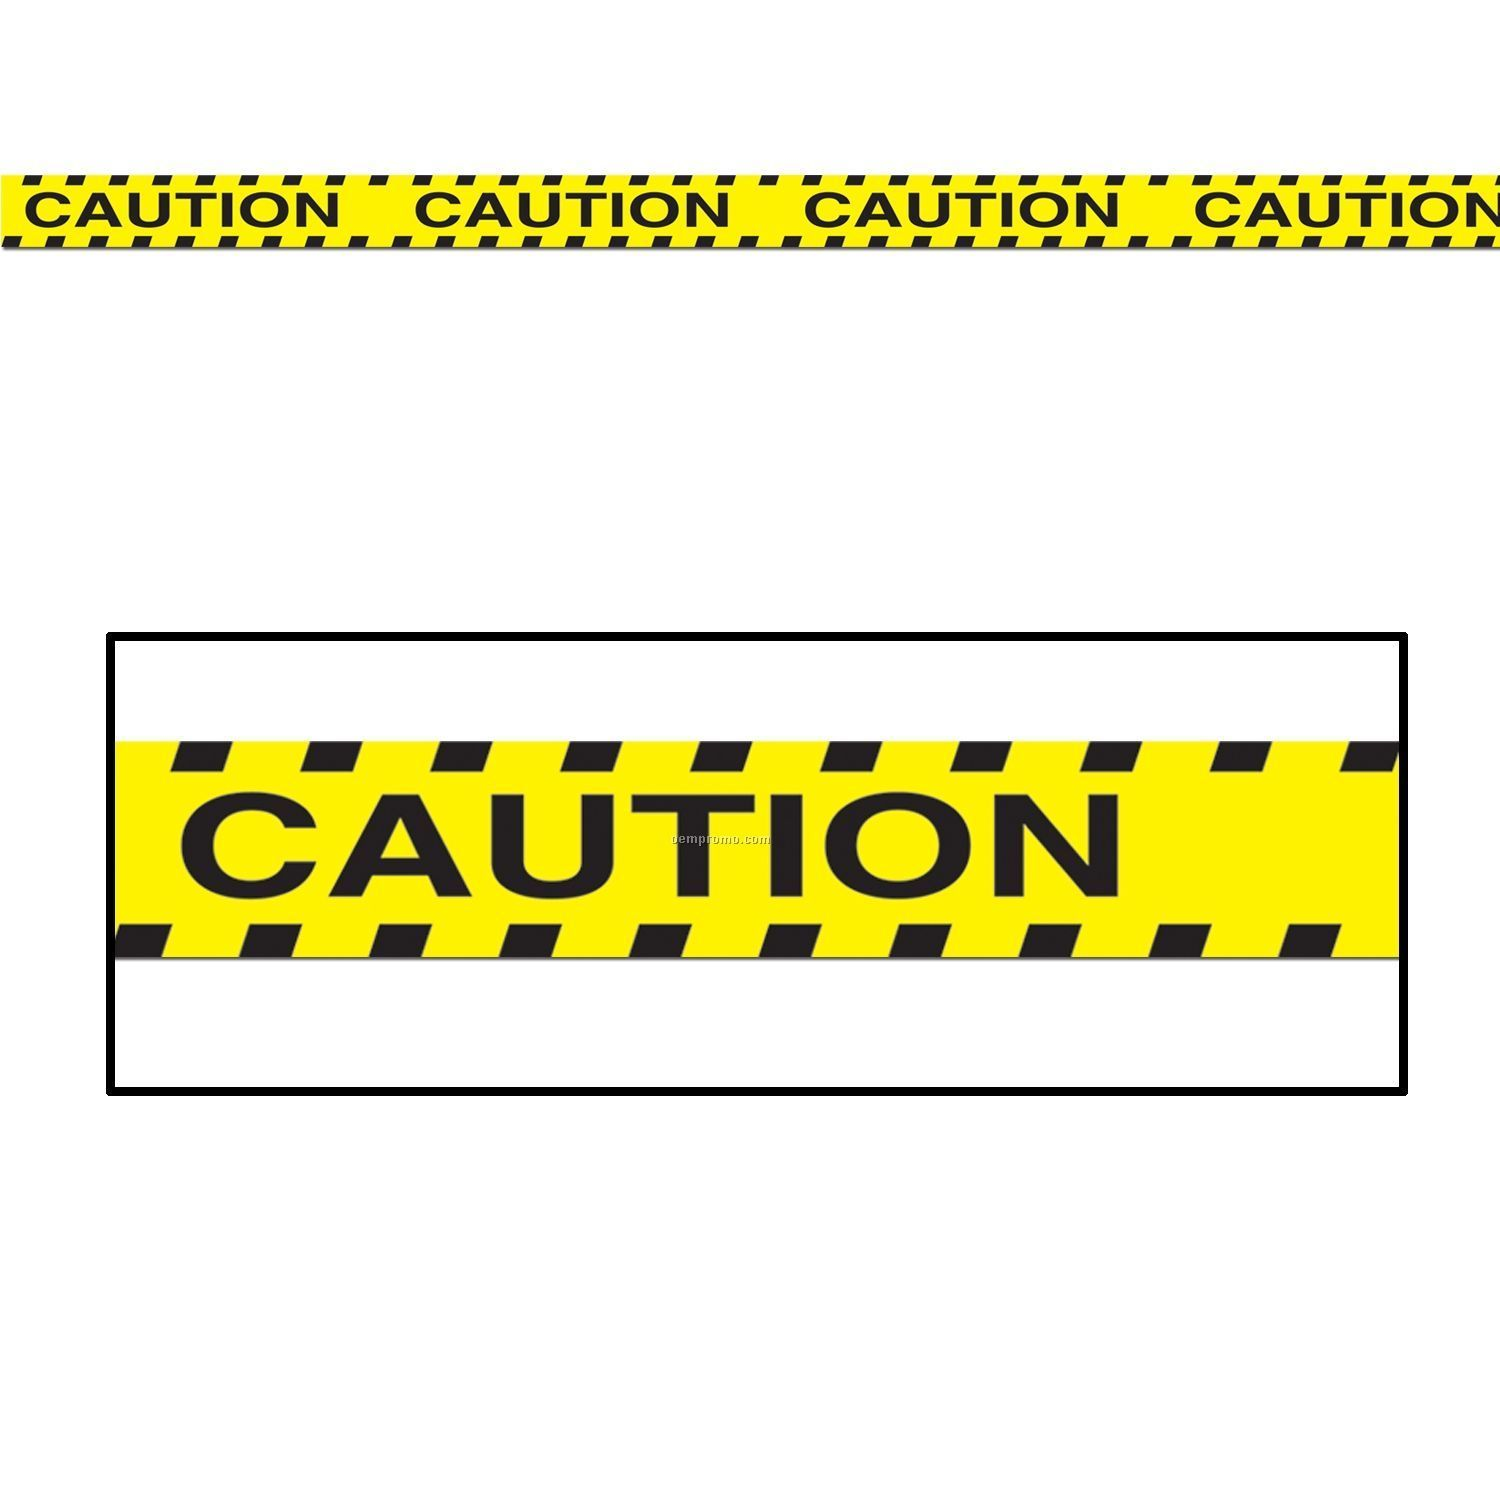 Caution tape clipart border image library download Caution tape clipart border 3 » Clipart Portal image library download